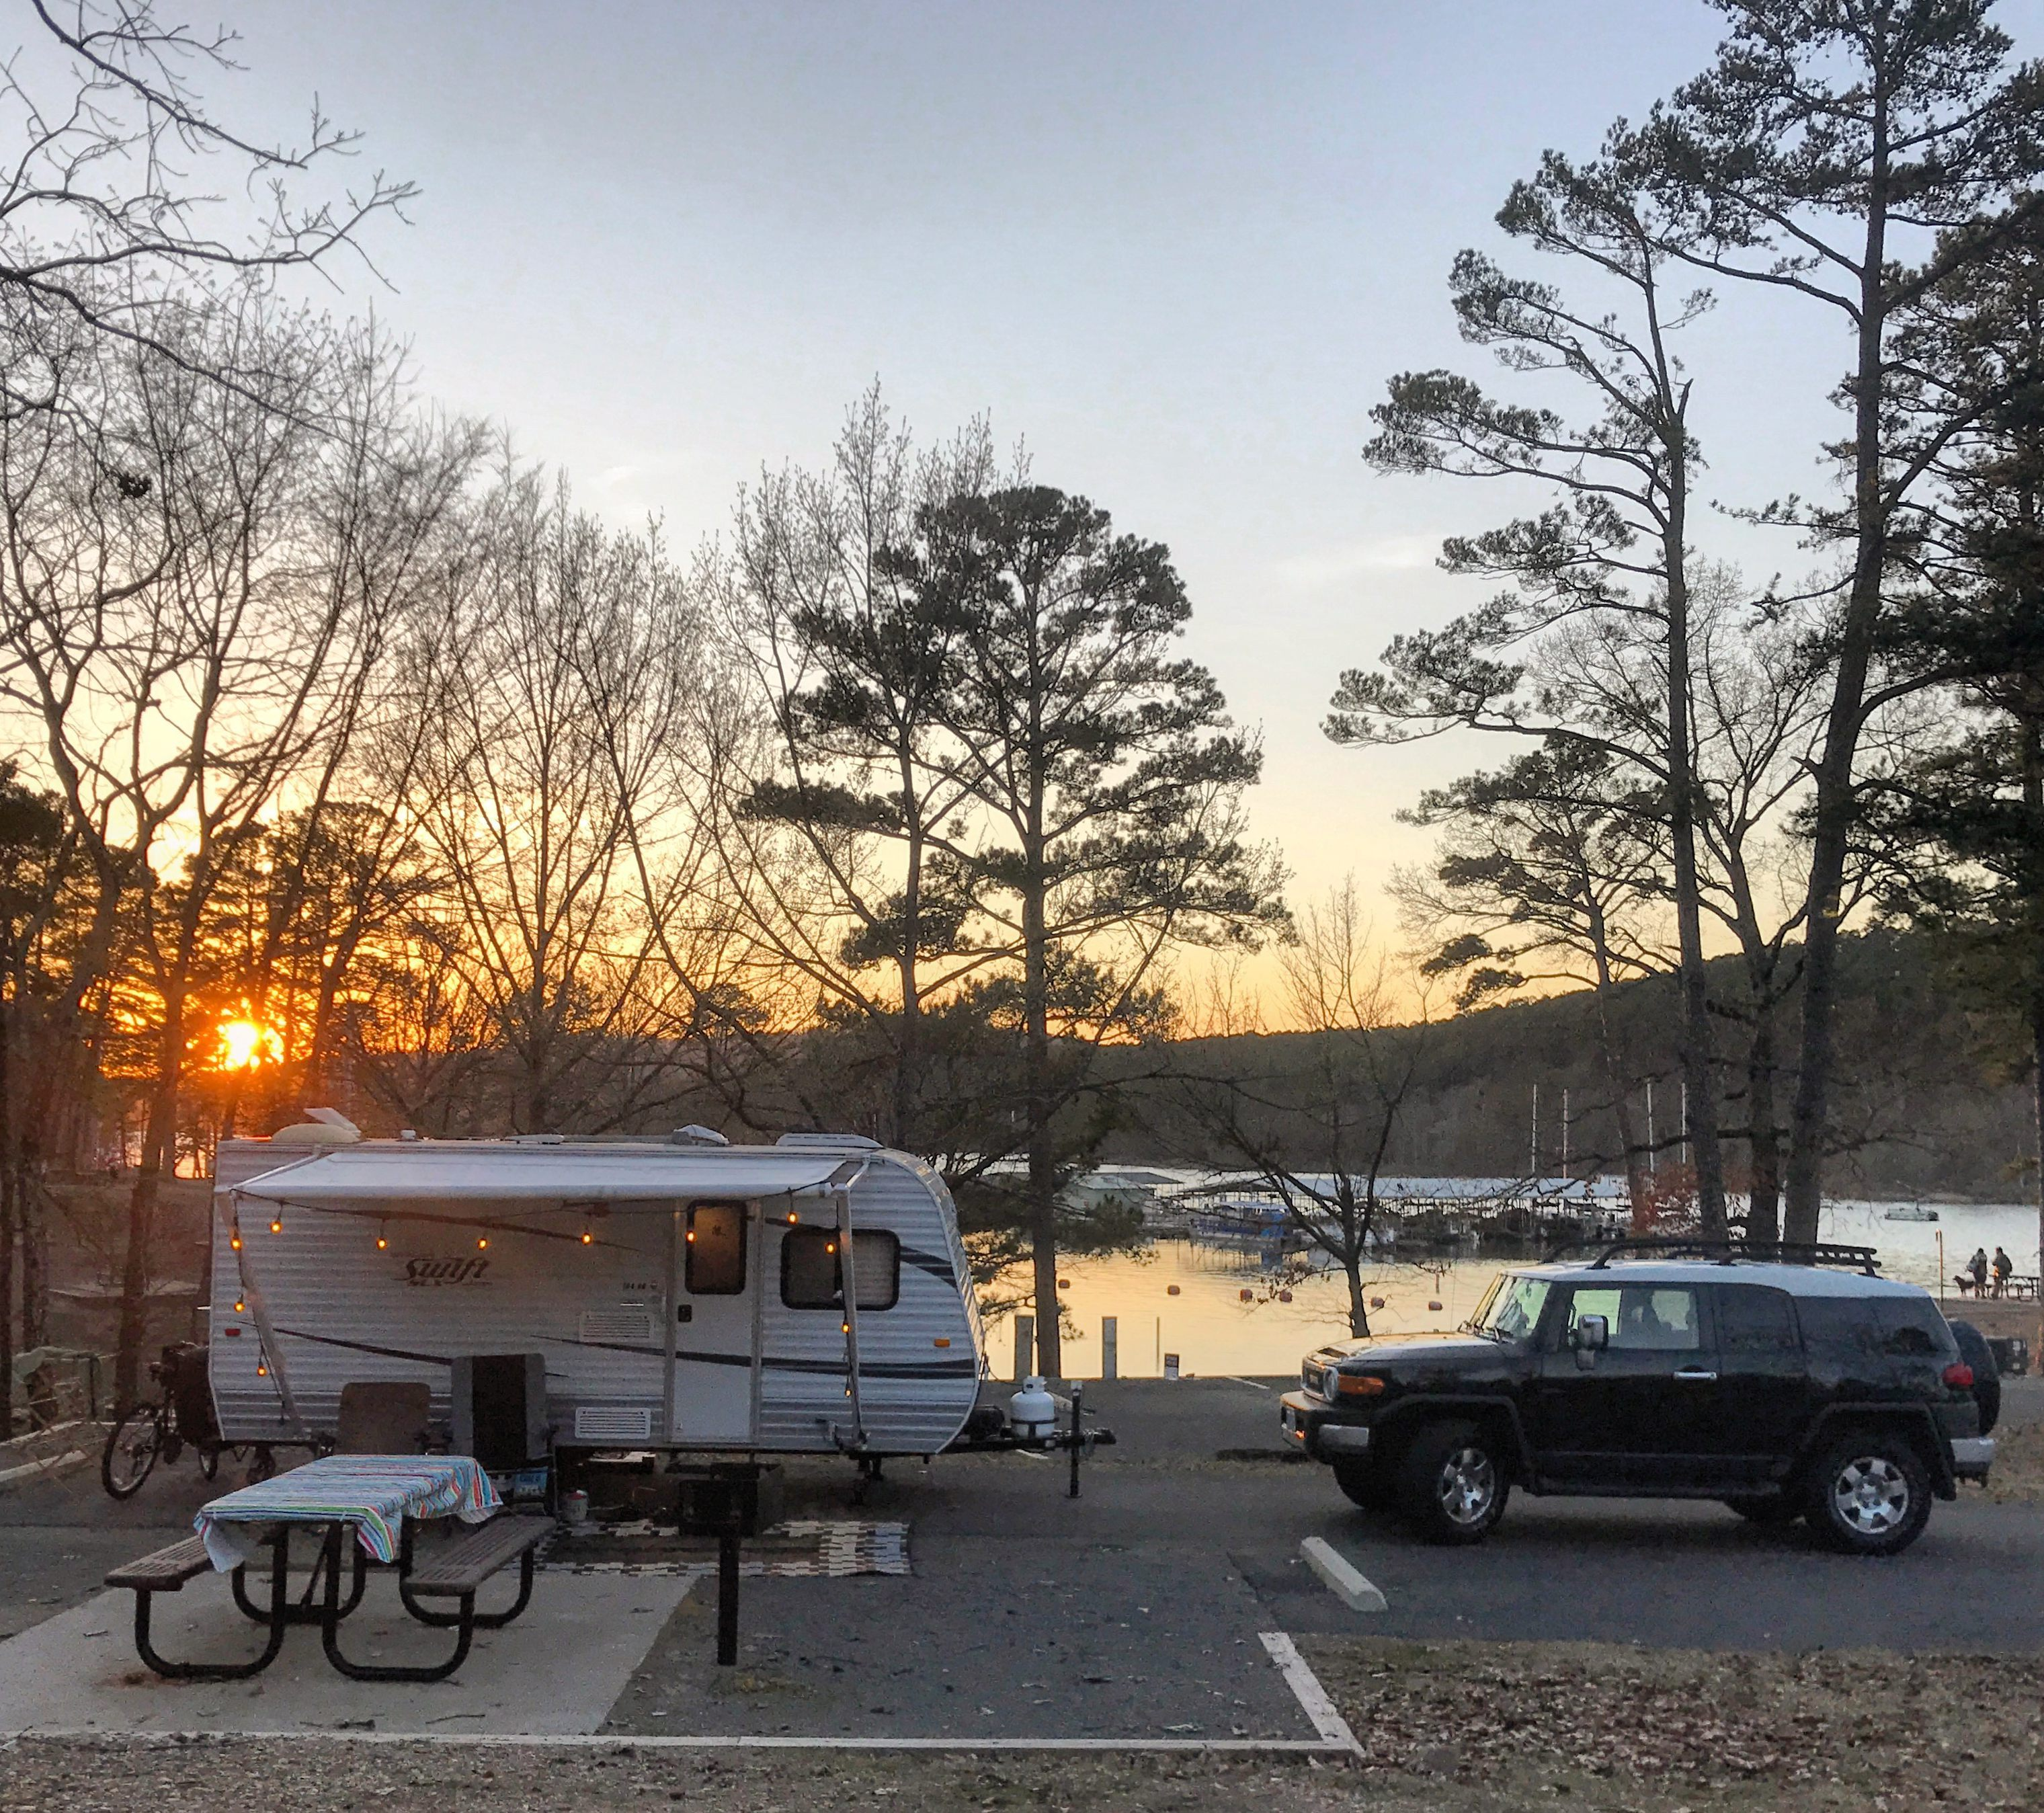 Campground Review: Lake Ouachita State Park near Hot Springs, AR